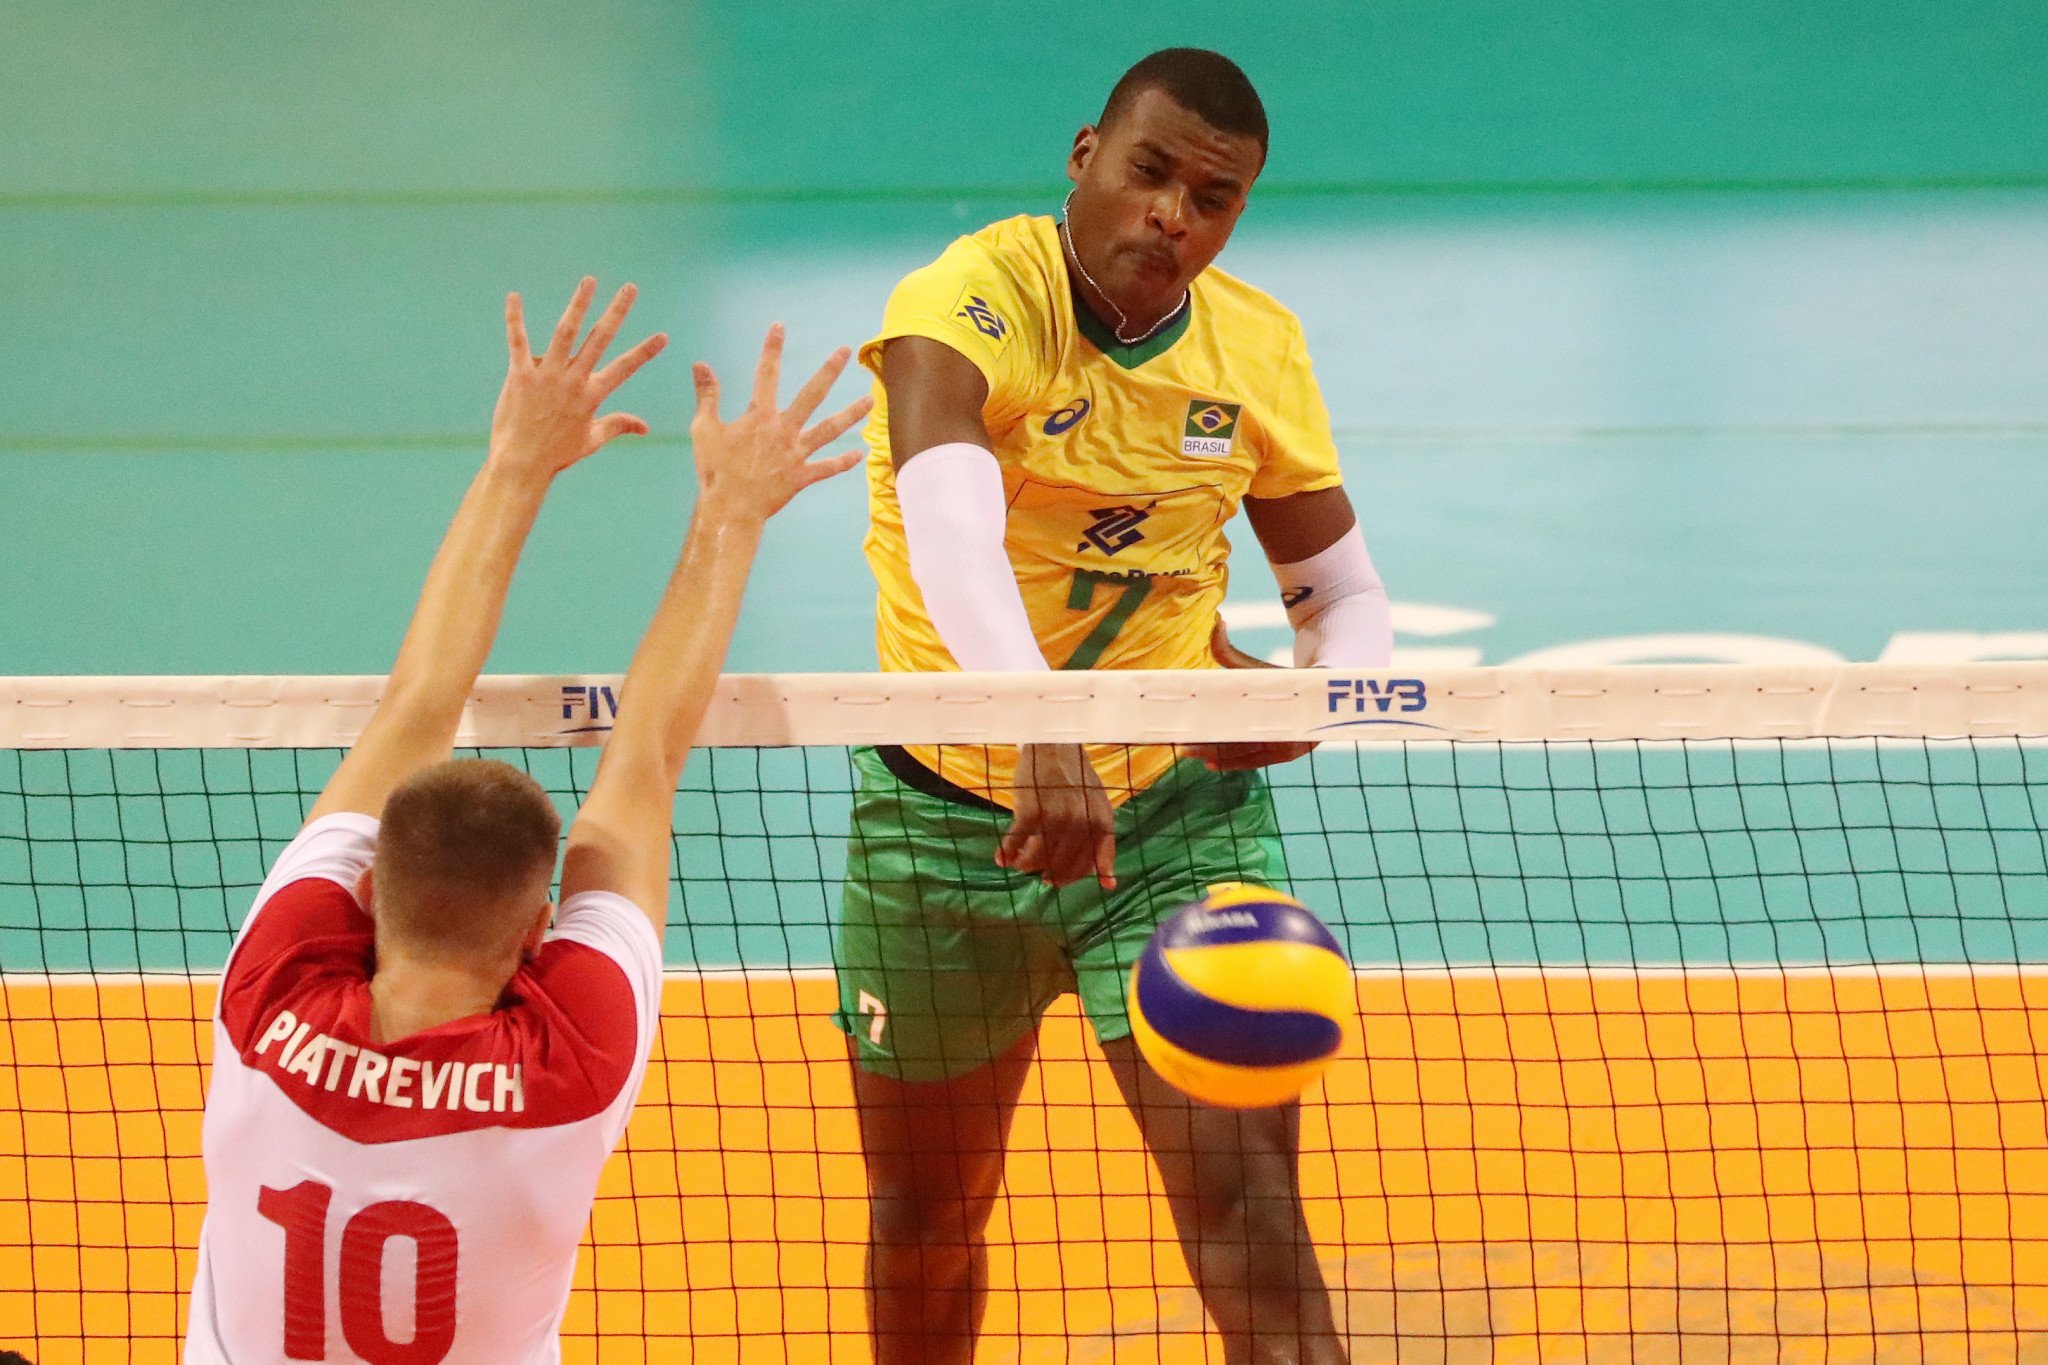 Paulo Ferreira of Brazil scored 18 points as the favourites defeated Belarus in Tunis ©FIVB